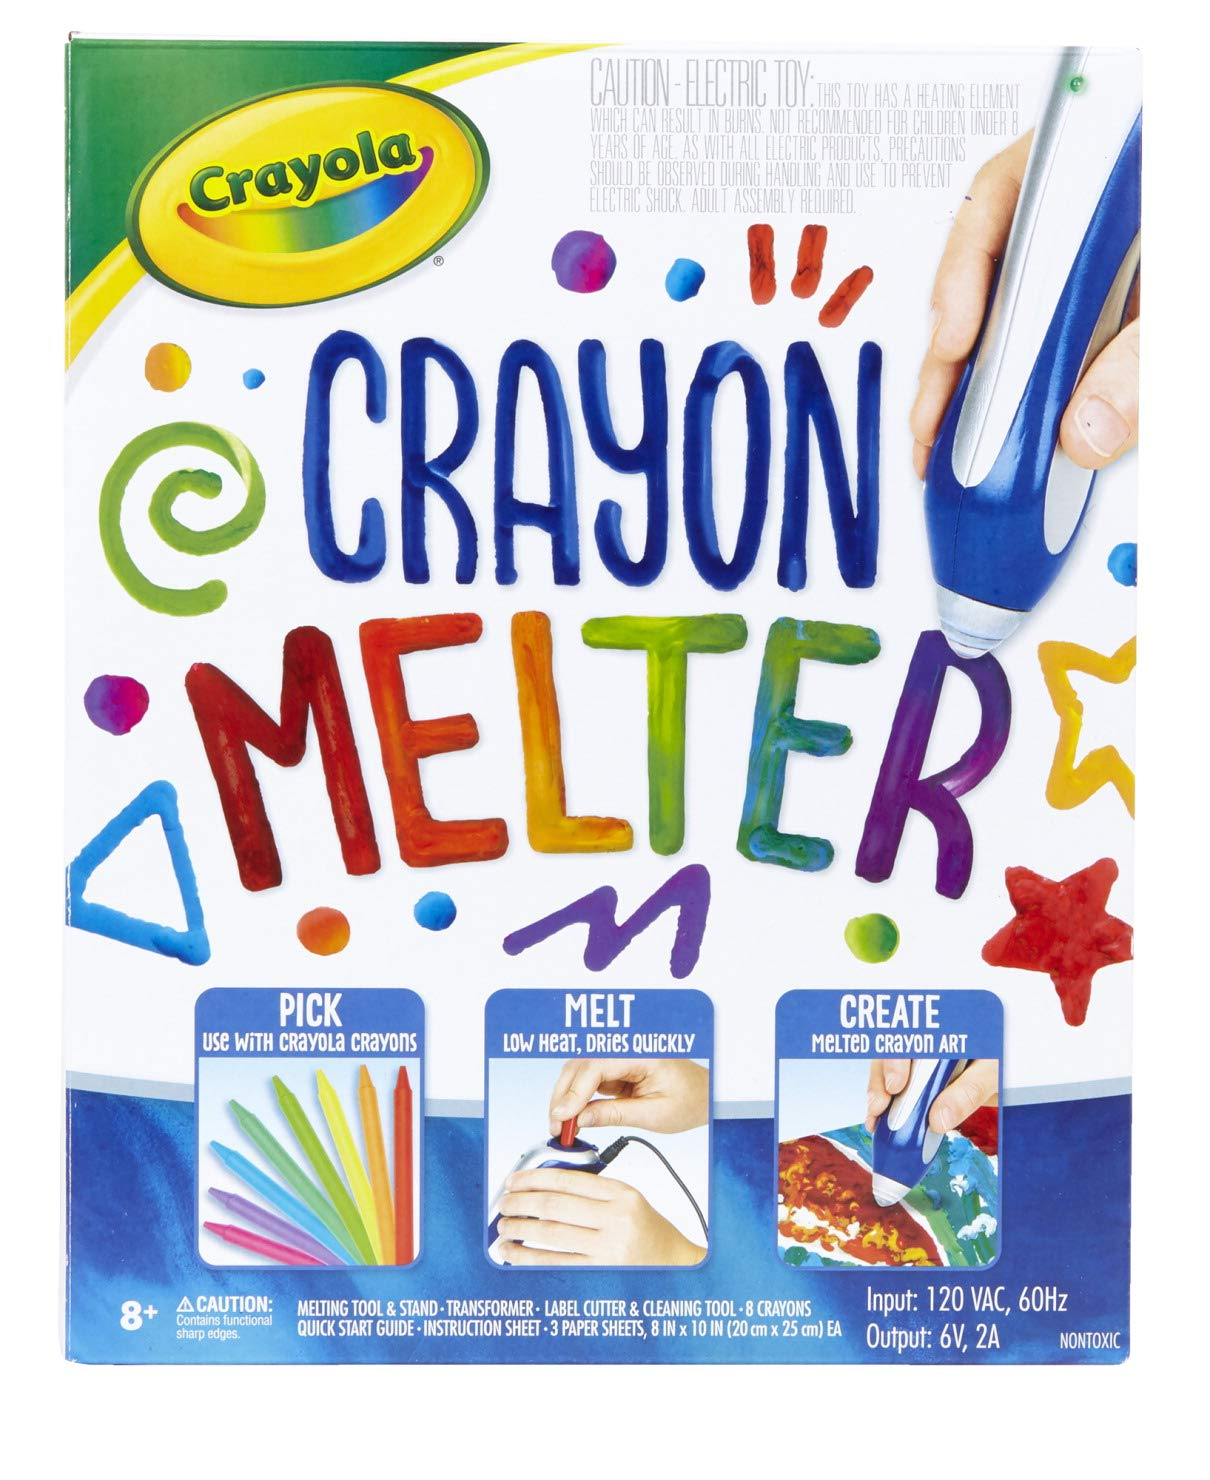 Crayola Crayon Melter, Crayon Melting Art, Gift for Kids, Ages 8, 9, 10, 11